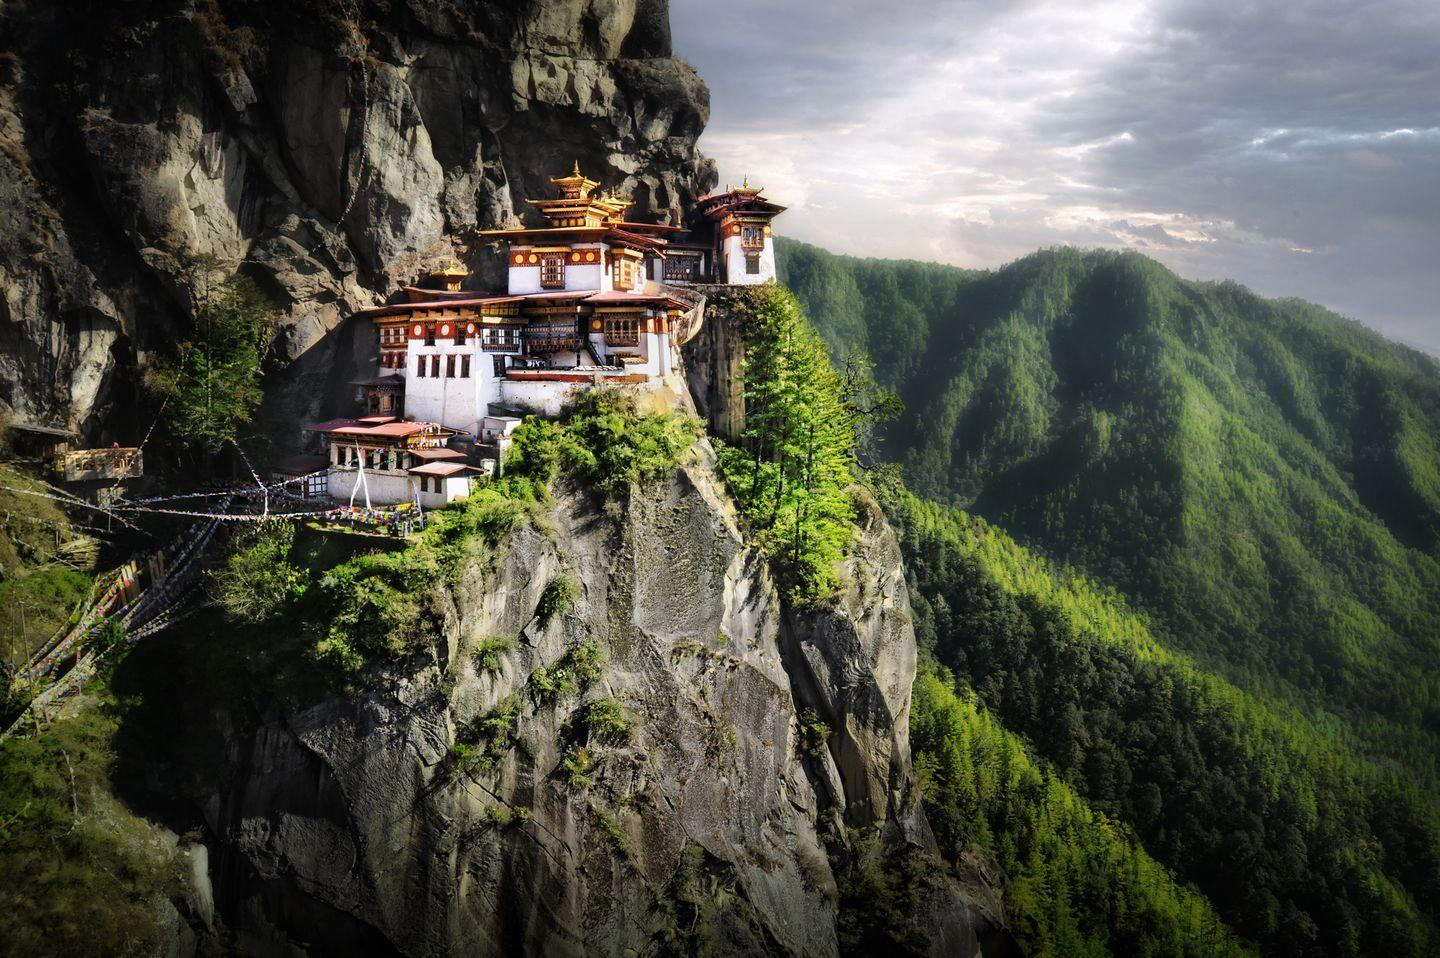 "<p><strong>Why for 2020: </strong>Topping Lonely Planet's 'Best In Travel for 2020' is the kingdom of Bhutan. As well as its rich culture and history, the country has been awarded the number one spot as it is the only carbon-negative country in the world and is set to be the first fully organic nation by next year.</p><p>Bhutan also operates a tourist fee to curb any negative effects of tourism, charging around £195 per day for visitors.</p><p><strong>Top Tips: </strong>Any visit to Bhutan must be organised through an authorised<a href=""https://www.gov.uk/foreign-travel-advice/bhutan"" rel=""nofollow noopener"" target=""_blank"" data-ylk=""slk:travel agent in advance"" class=""link rapid-noclick-resp""> travel agent in advance</a>, so that can be handy for tips! Lonely Planet recommends mountain hikes through the monastry-ladened hills, witnessing ancient Buddhist traditions and basking in the country's natural beauty all while enjoying what nature has to offer, unspoiled by the negative effects of tourism.</p><p><a class=""link rapid-noclick-resp"" href=""https://go.redirectingat.com?id=127X1599956&url=https%3A%2F%2Fwww.skyscanner.net%2Ftransport%2Fflights%2Flond%2Fktm%2F201002%2F201014%2F%3Fadultsv2%3D1%26cabinclass%3Deconomy%26rtn%3D1%26preferdirects%3Dfalse%26outboundaltsenabled%3Dfalse%26inboundaltsenabled%3Dfalse%26qp_prevProvider%3Dins_month%26qp_prevCurrency%3DGBP%26qp_prevPrice%3D518%26priceSourceId%3Dtaps-taps%26priceTrace%3D201910210407%252AI%252ALHR%252AKTM%252A20201002%252Aflsh%252AAI%257C201910210407%252AI%252AKTM%252ALHR%252A20201014%252Aflsh%252AAI%23%2F&sref=http%3A%2F%2Fwww.elle.com%2Fuk%2Flife-and-culture%2Fculture%2Fg32358%2Fholiday-destinations%2F"" rel=""nofollow noopener"" target=""_blank"" data-ylk=""slk:Explore flights to Kathmandu"">Explore flights to Kathmandu</a><br></p>"